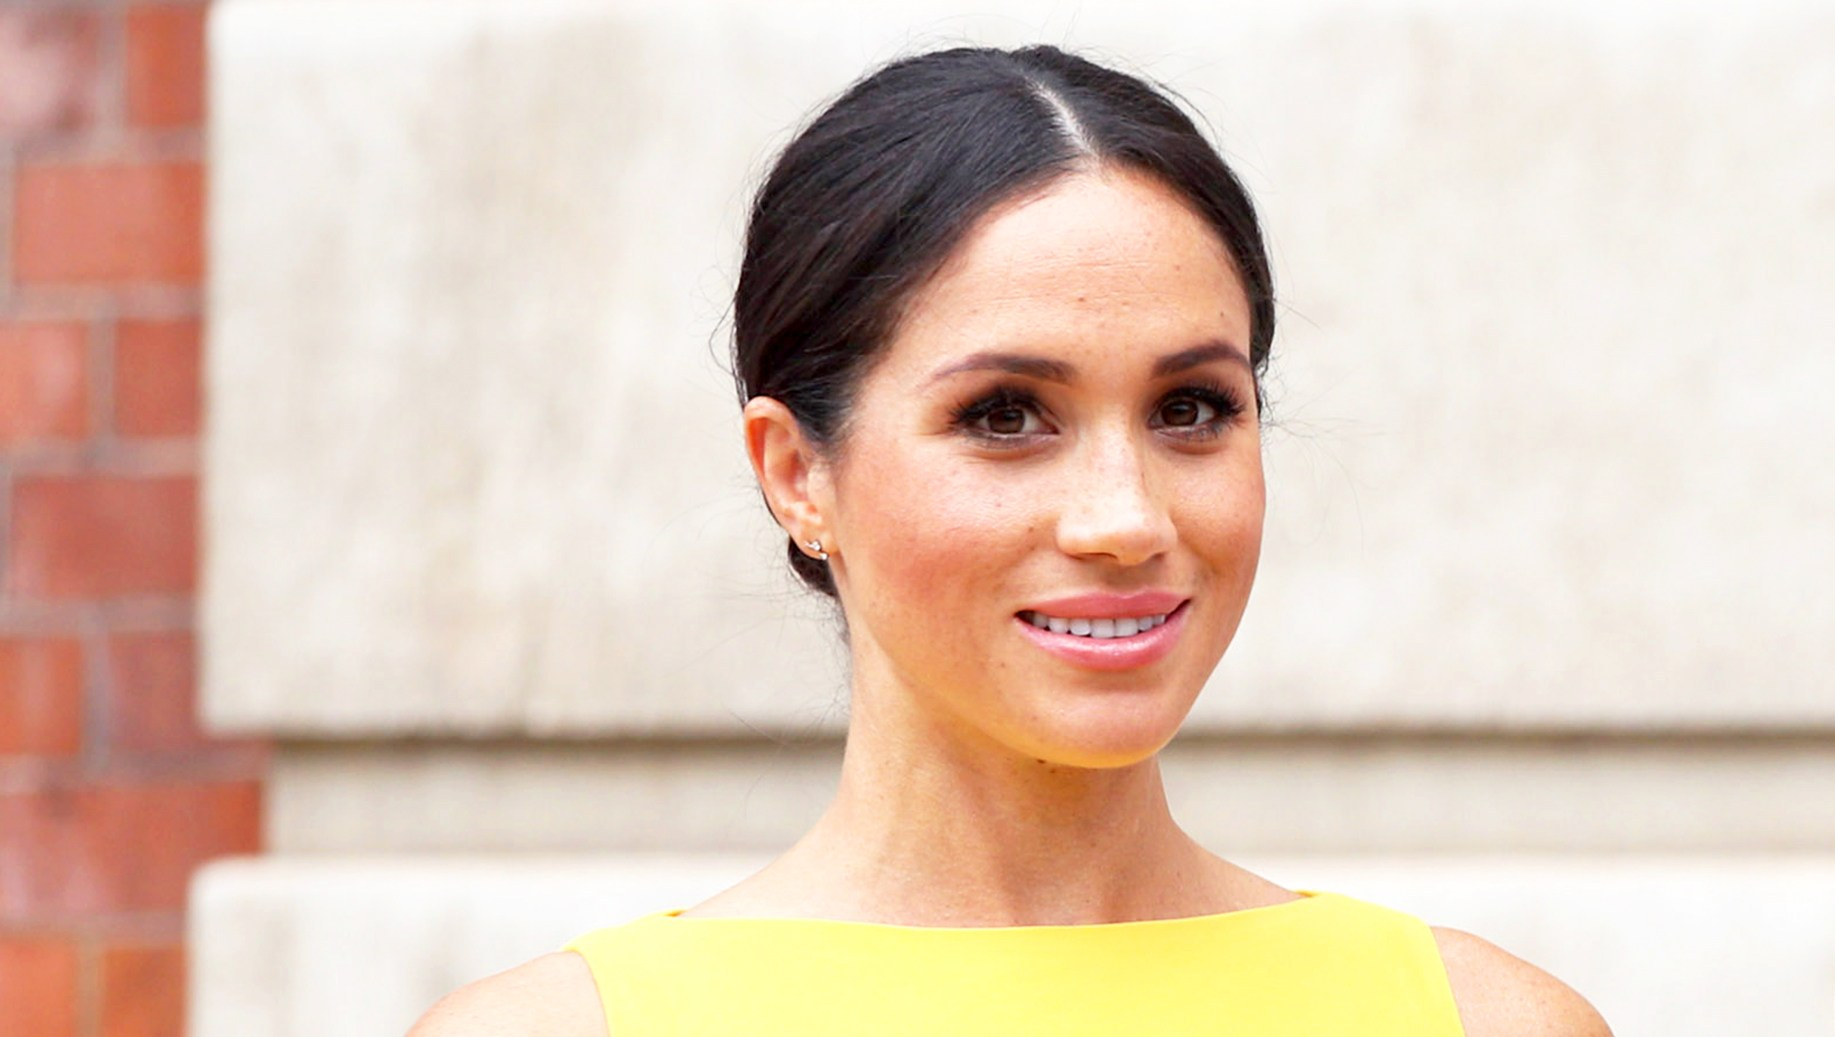 Meghan Markle attends the Your Commonwealth Youth Challenge reception at Marlborough House on July 05, 2018 in London, England.